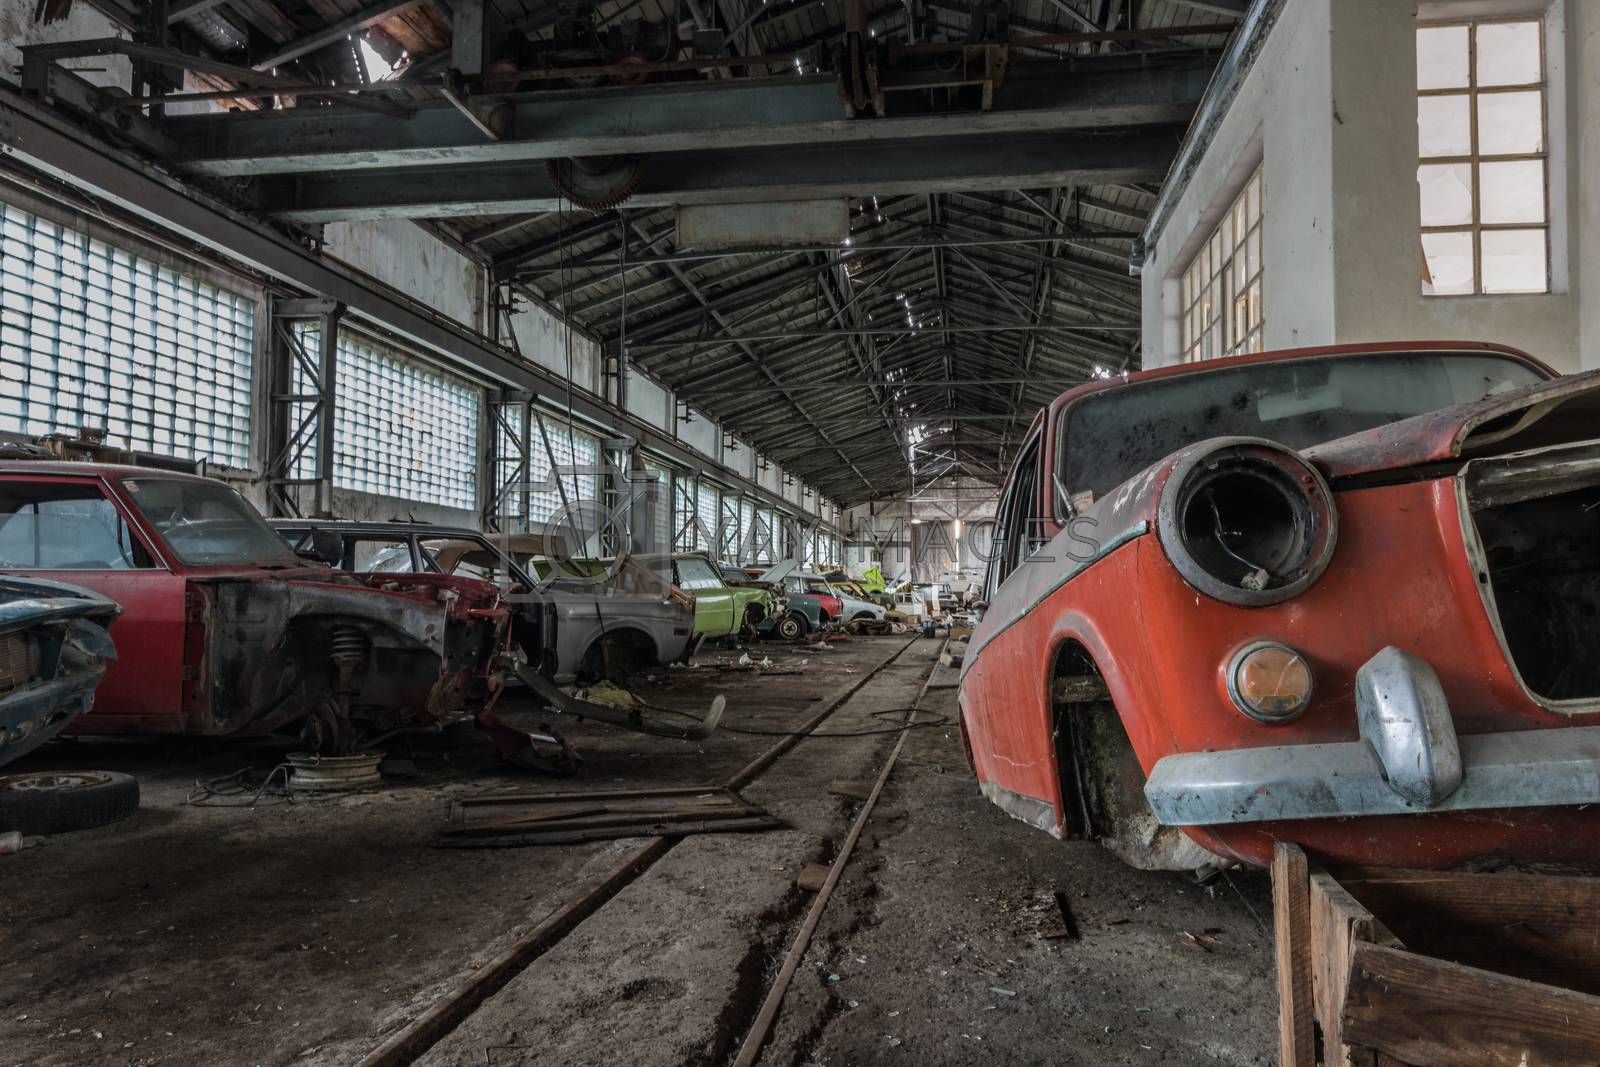 lots of colorful cars in an abandoned big hall